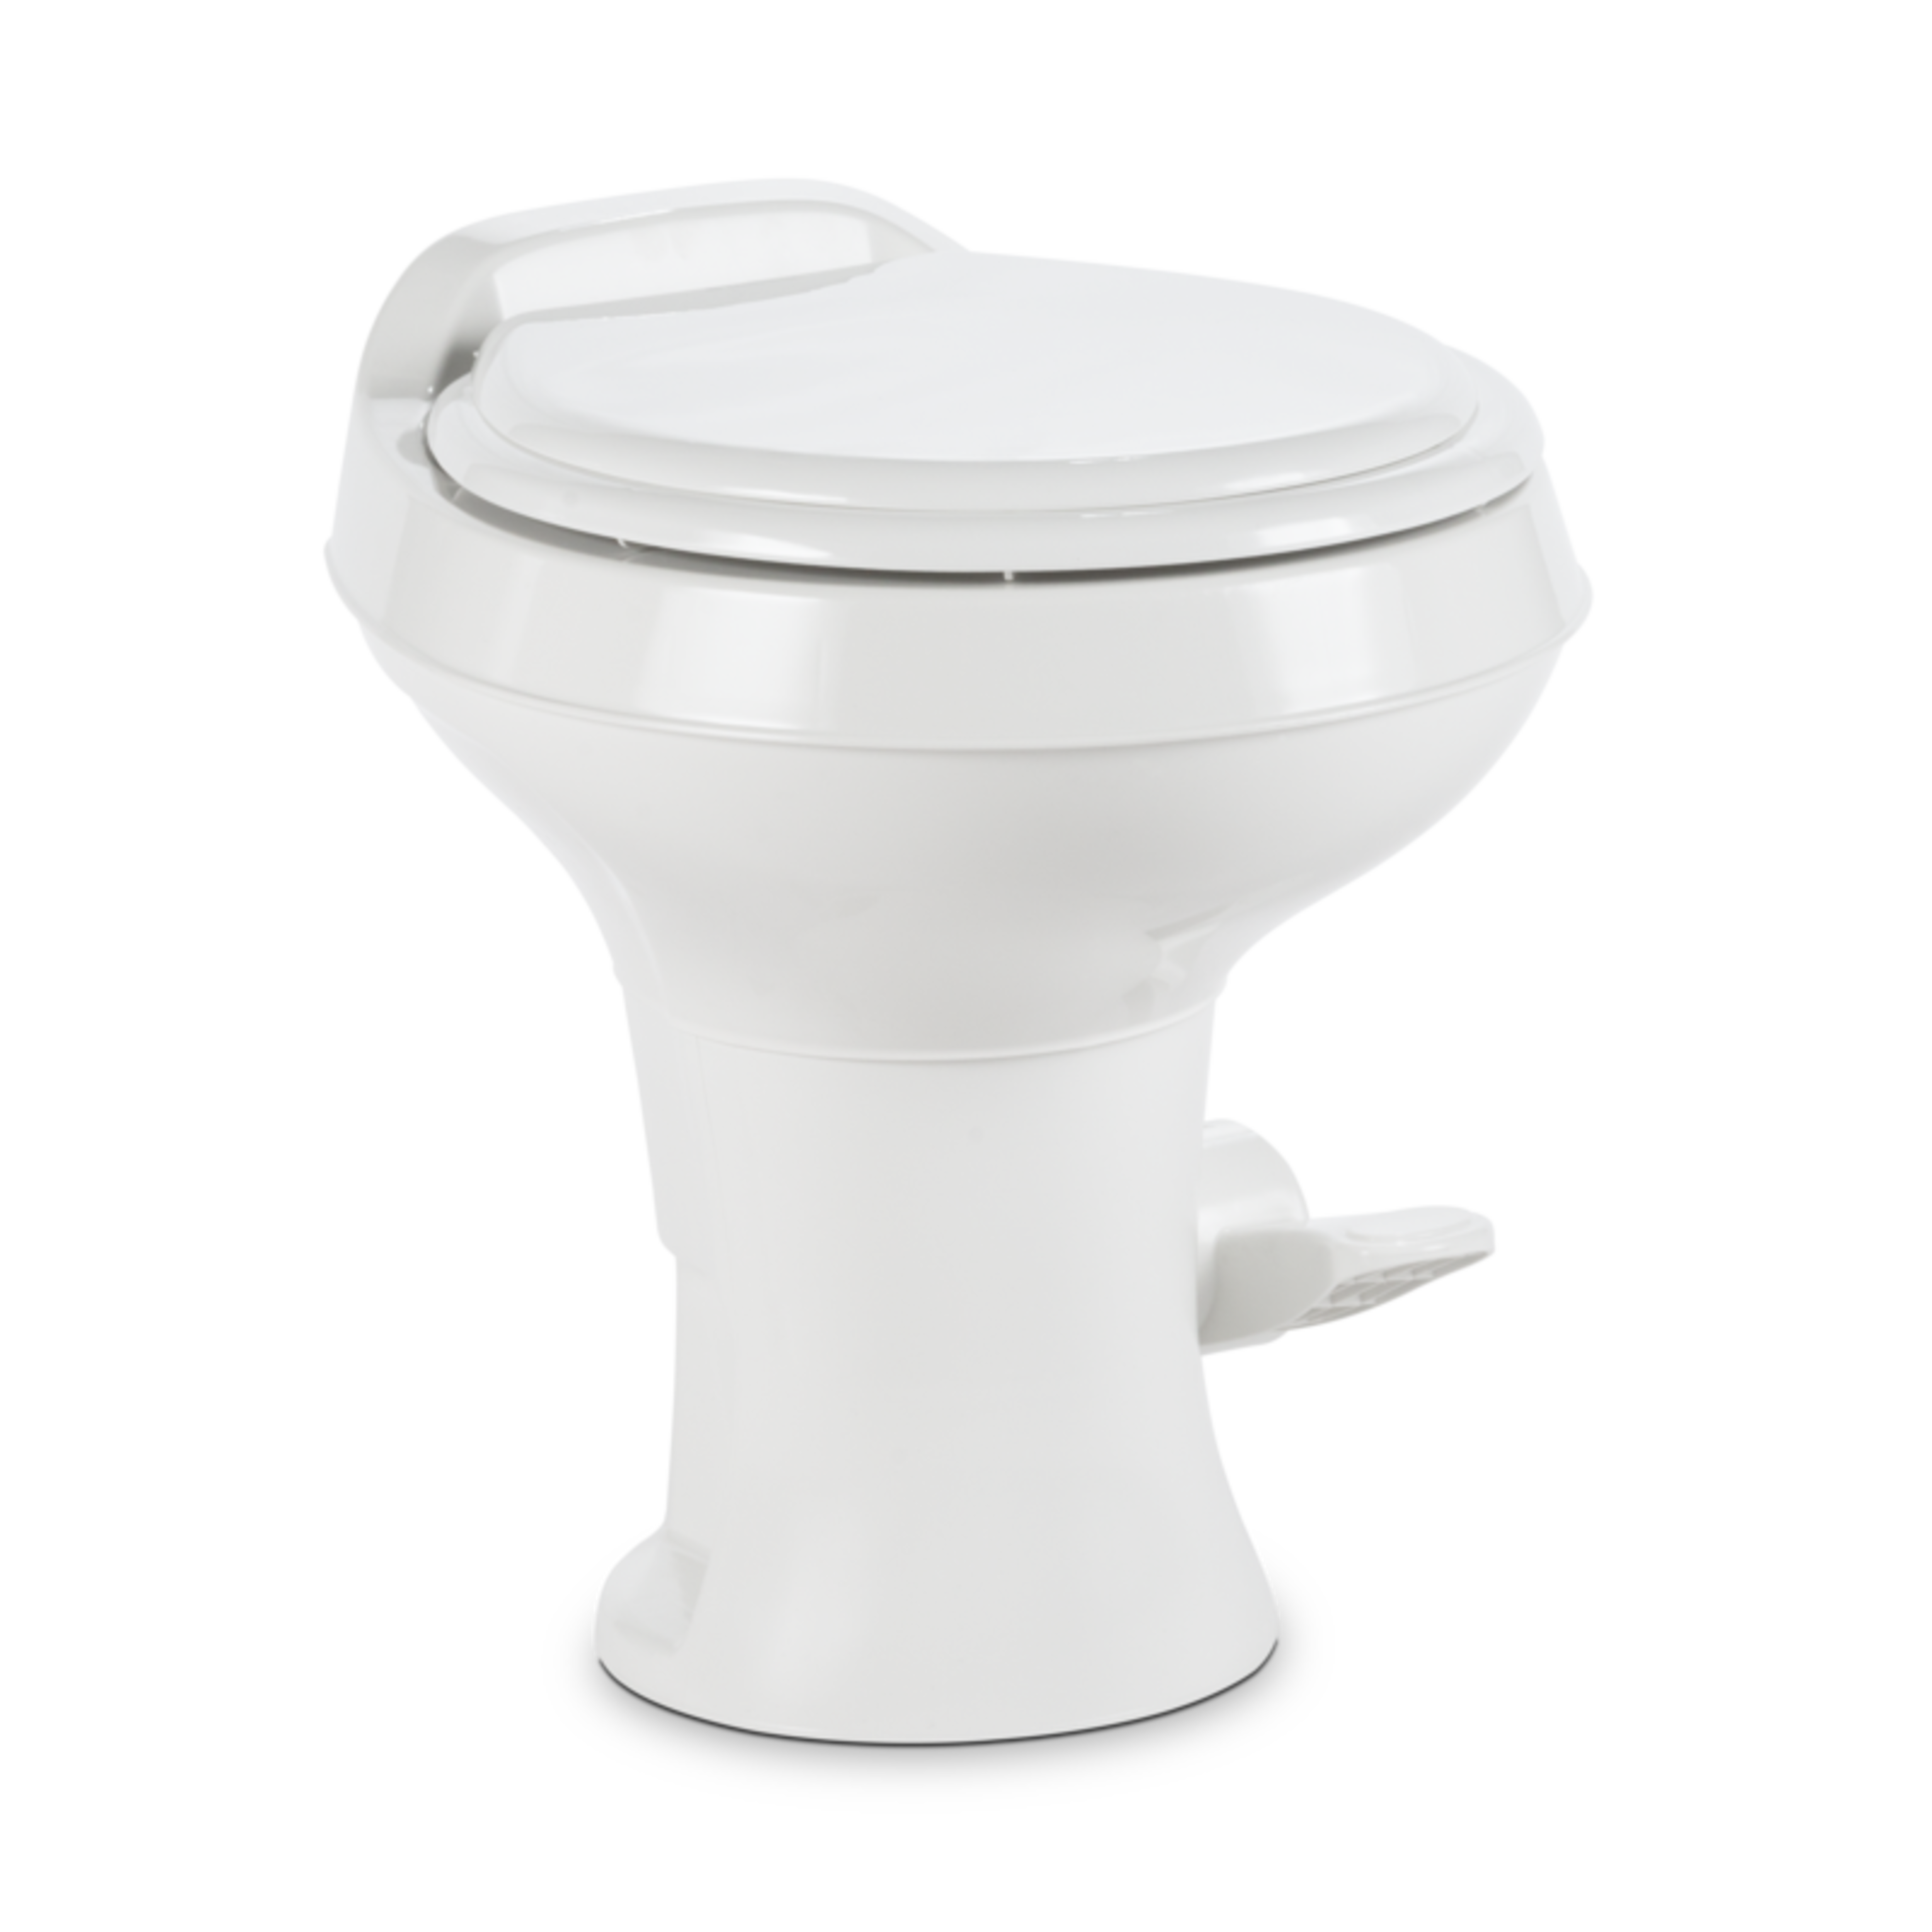 Dometic 302300071 300 Series Standard Height Toilet, White